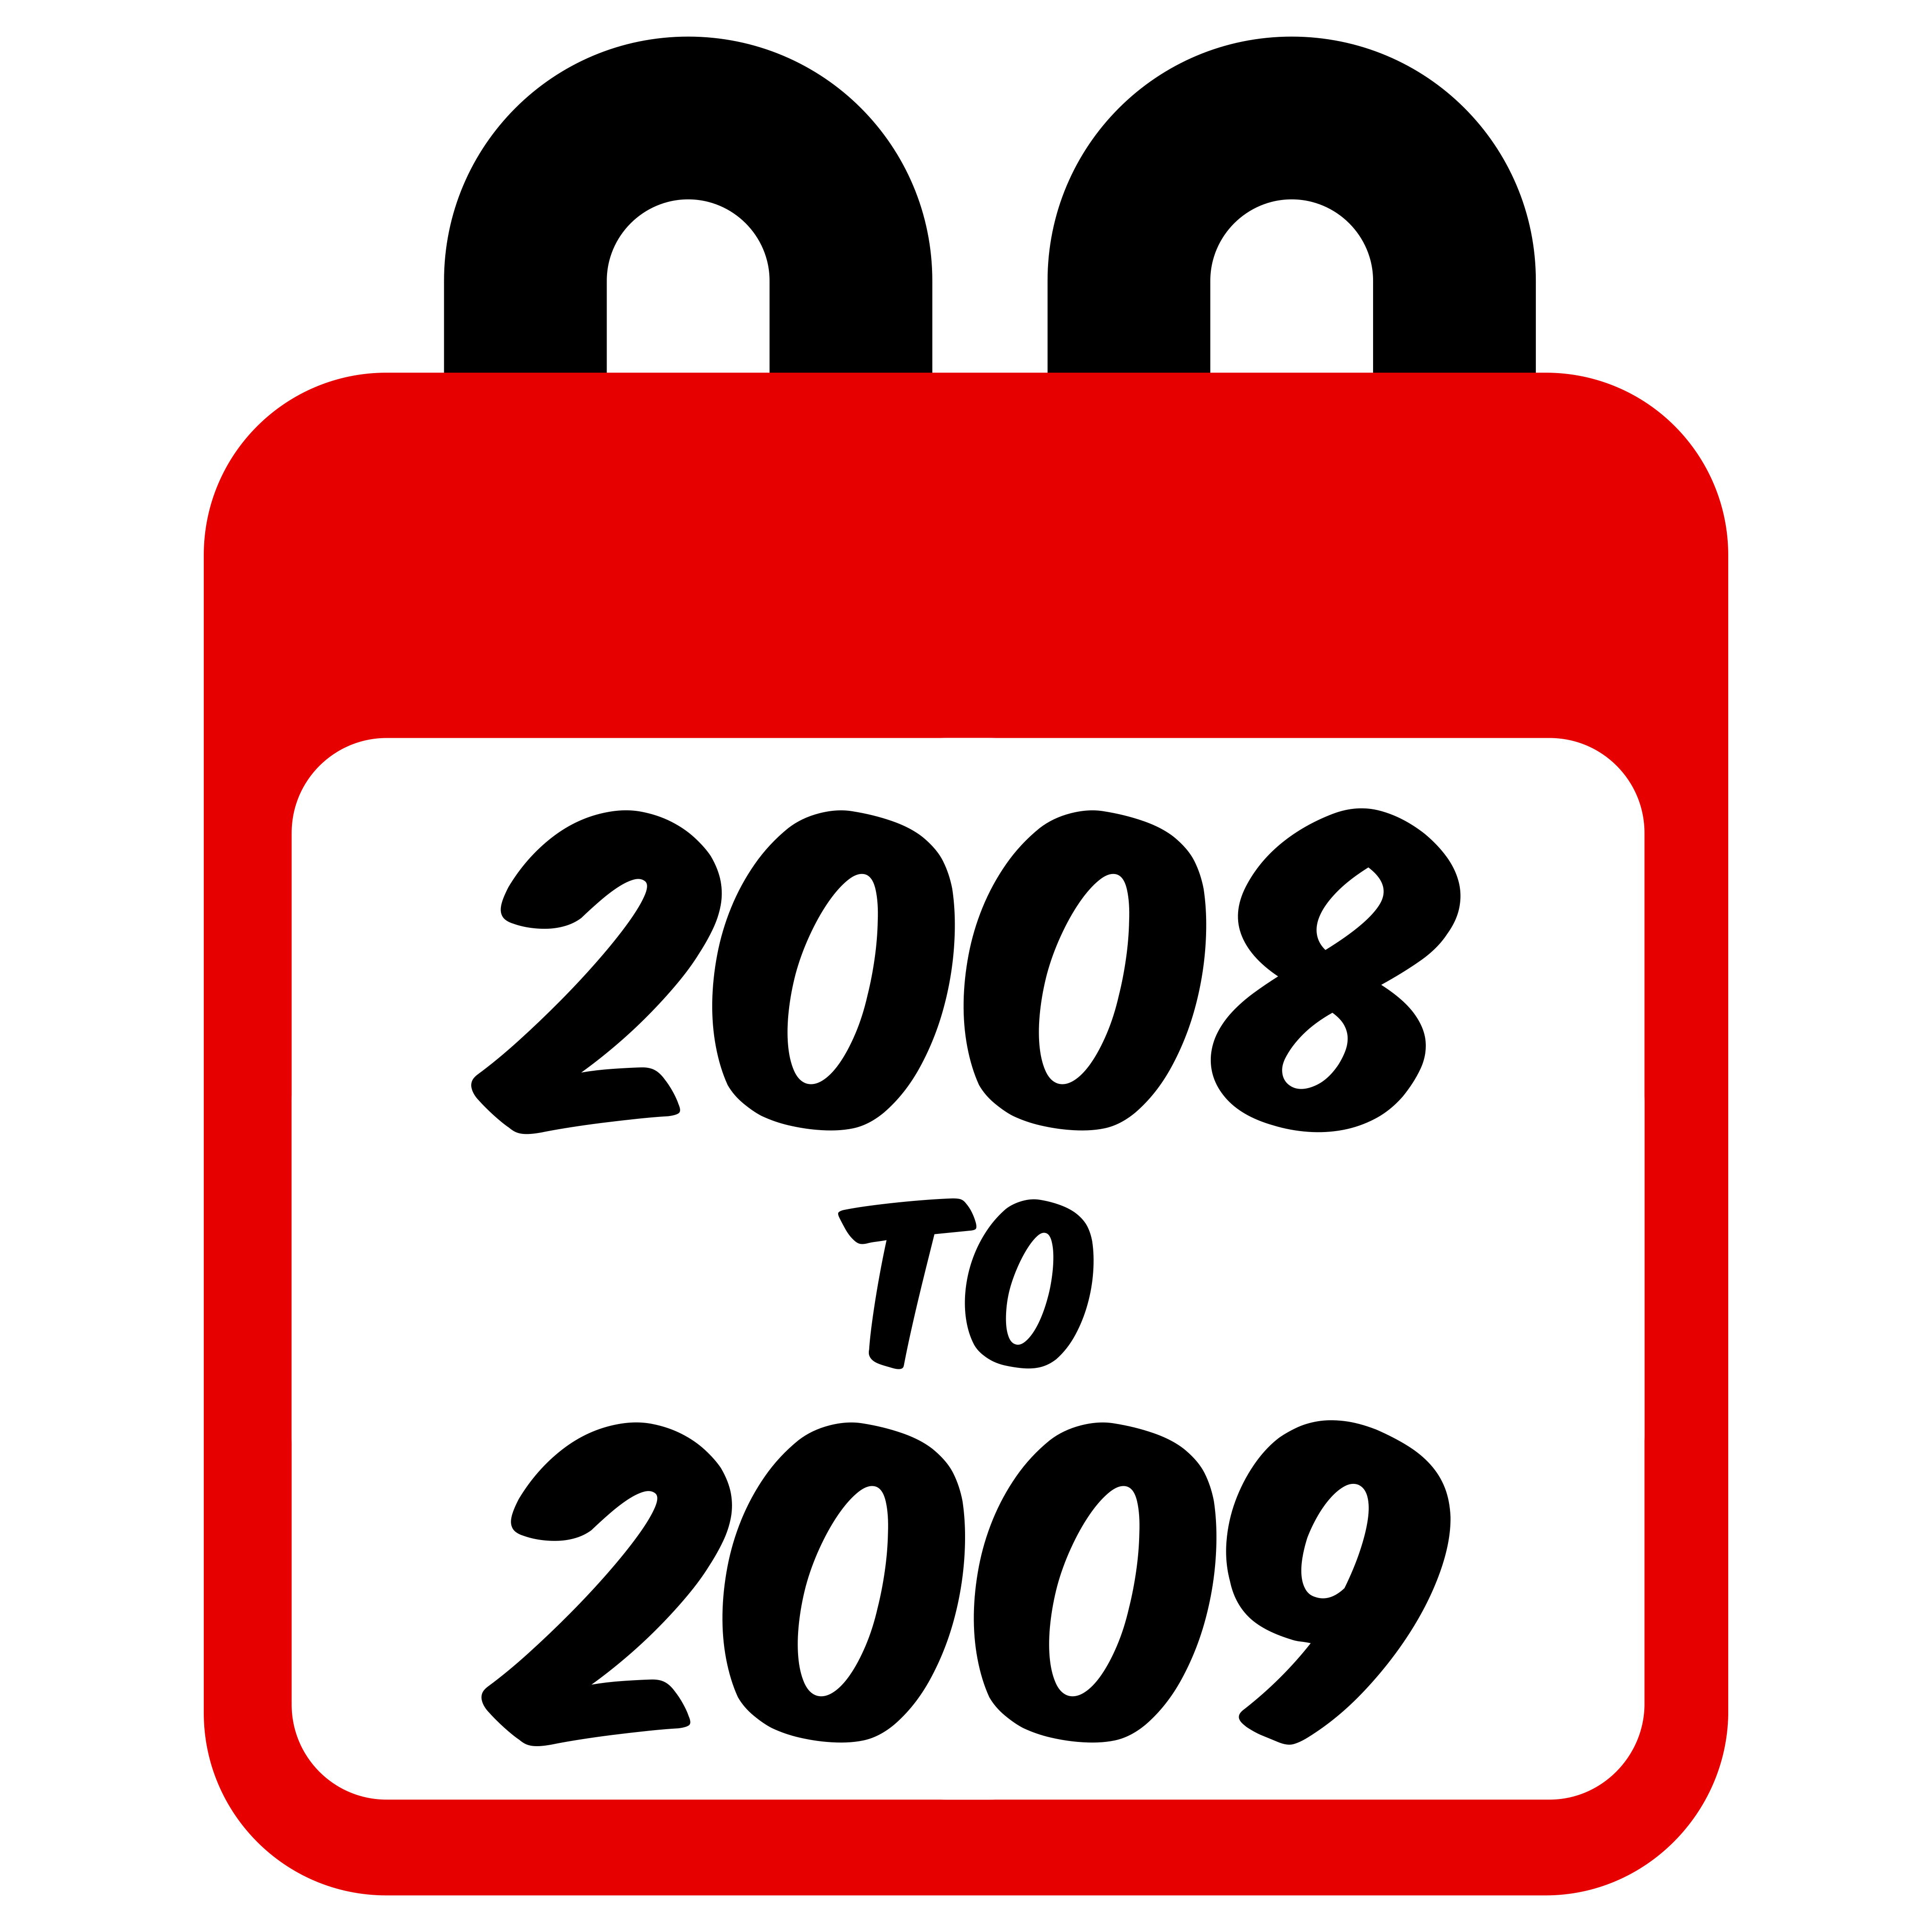 2008 to 2008 Calendar Graphic